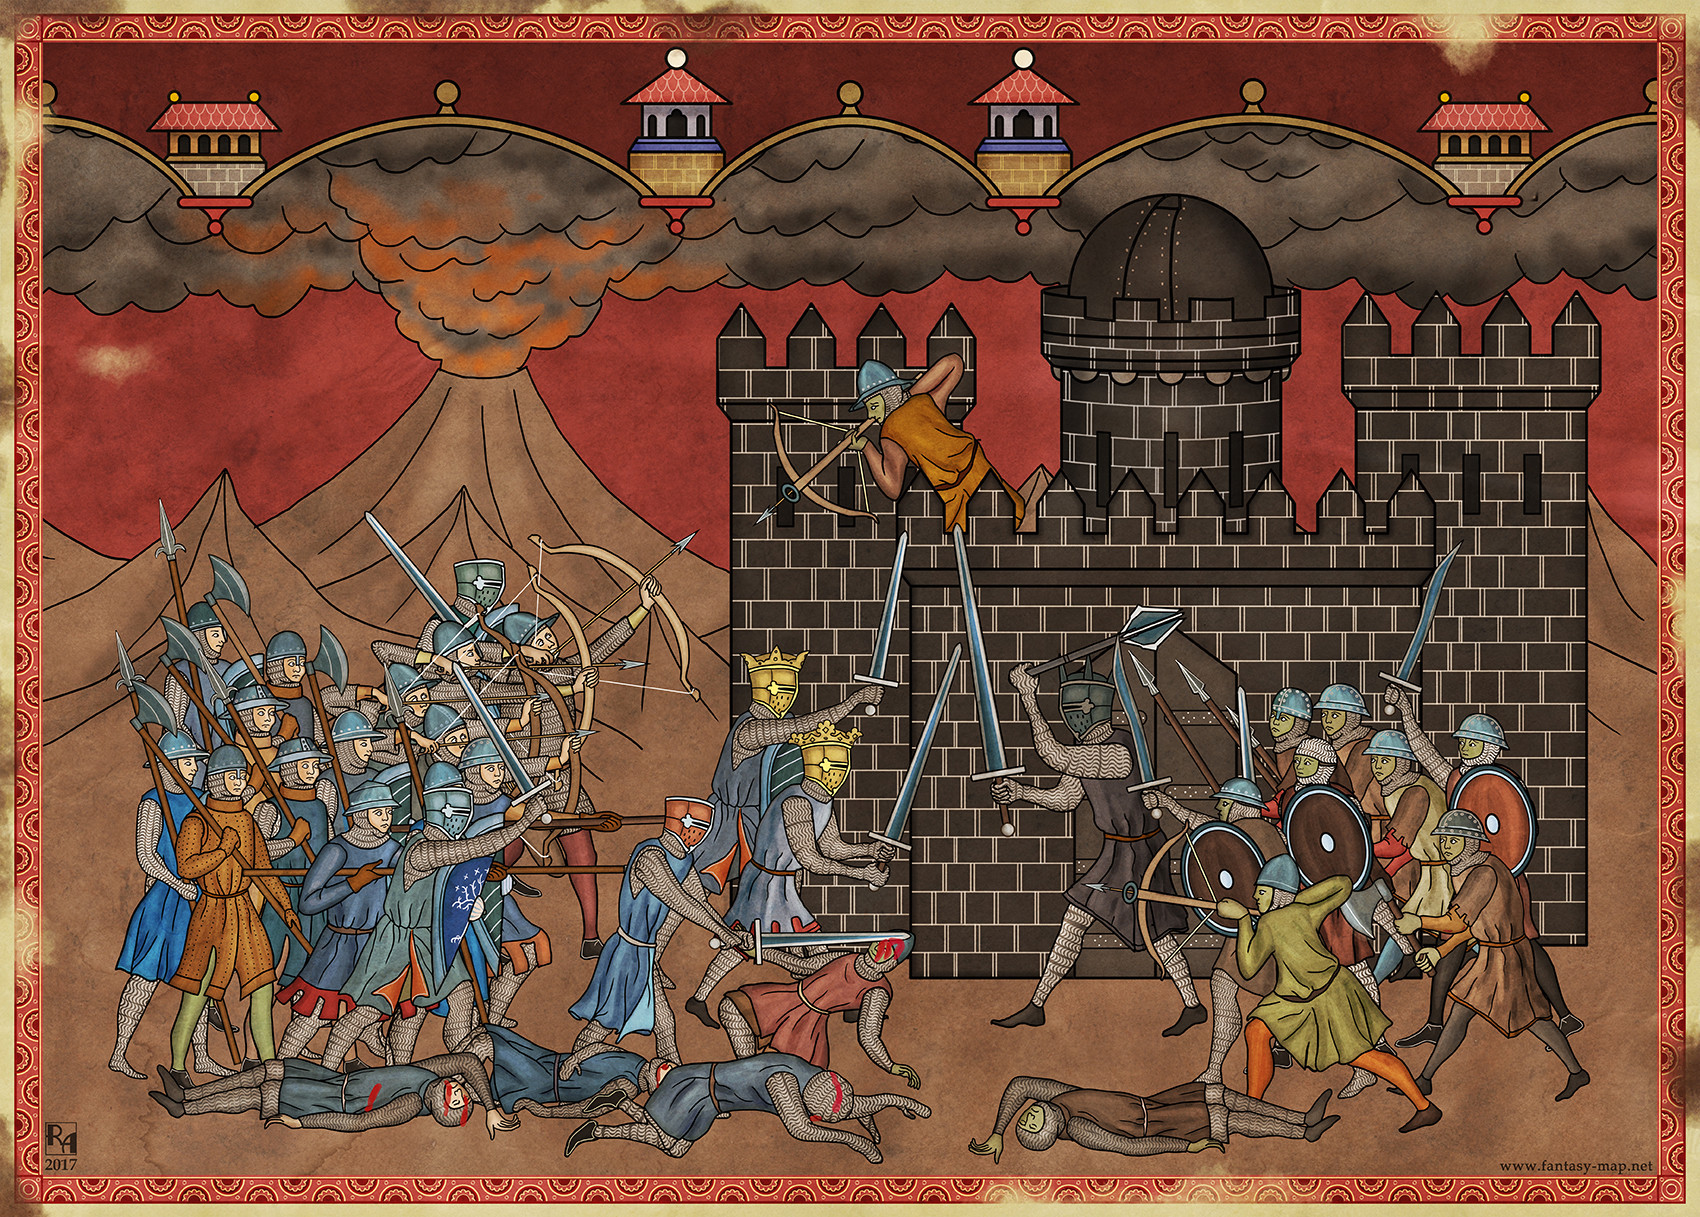 Robert altbauer isildur and elendil fighting sauron